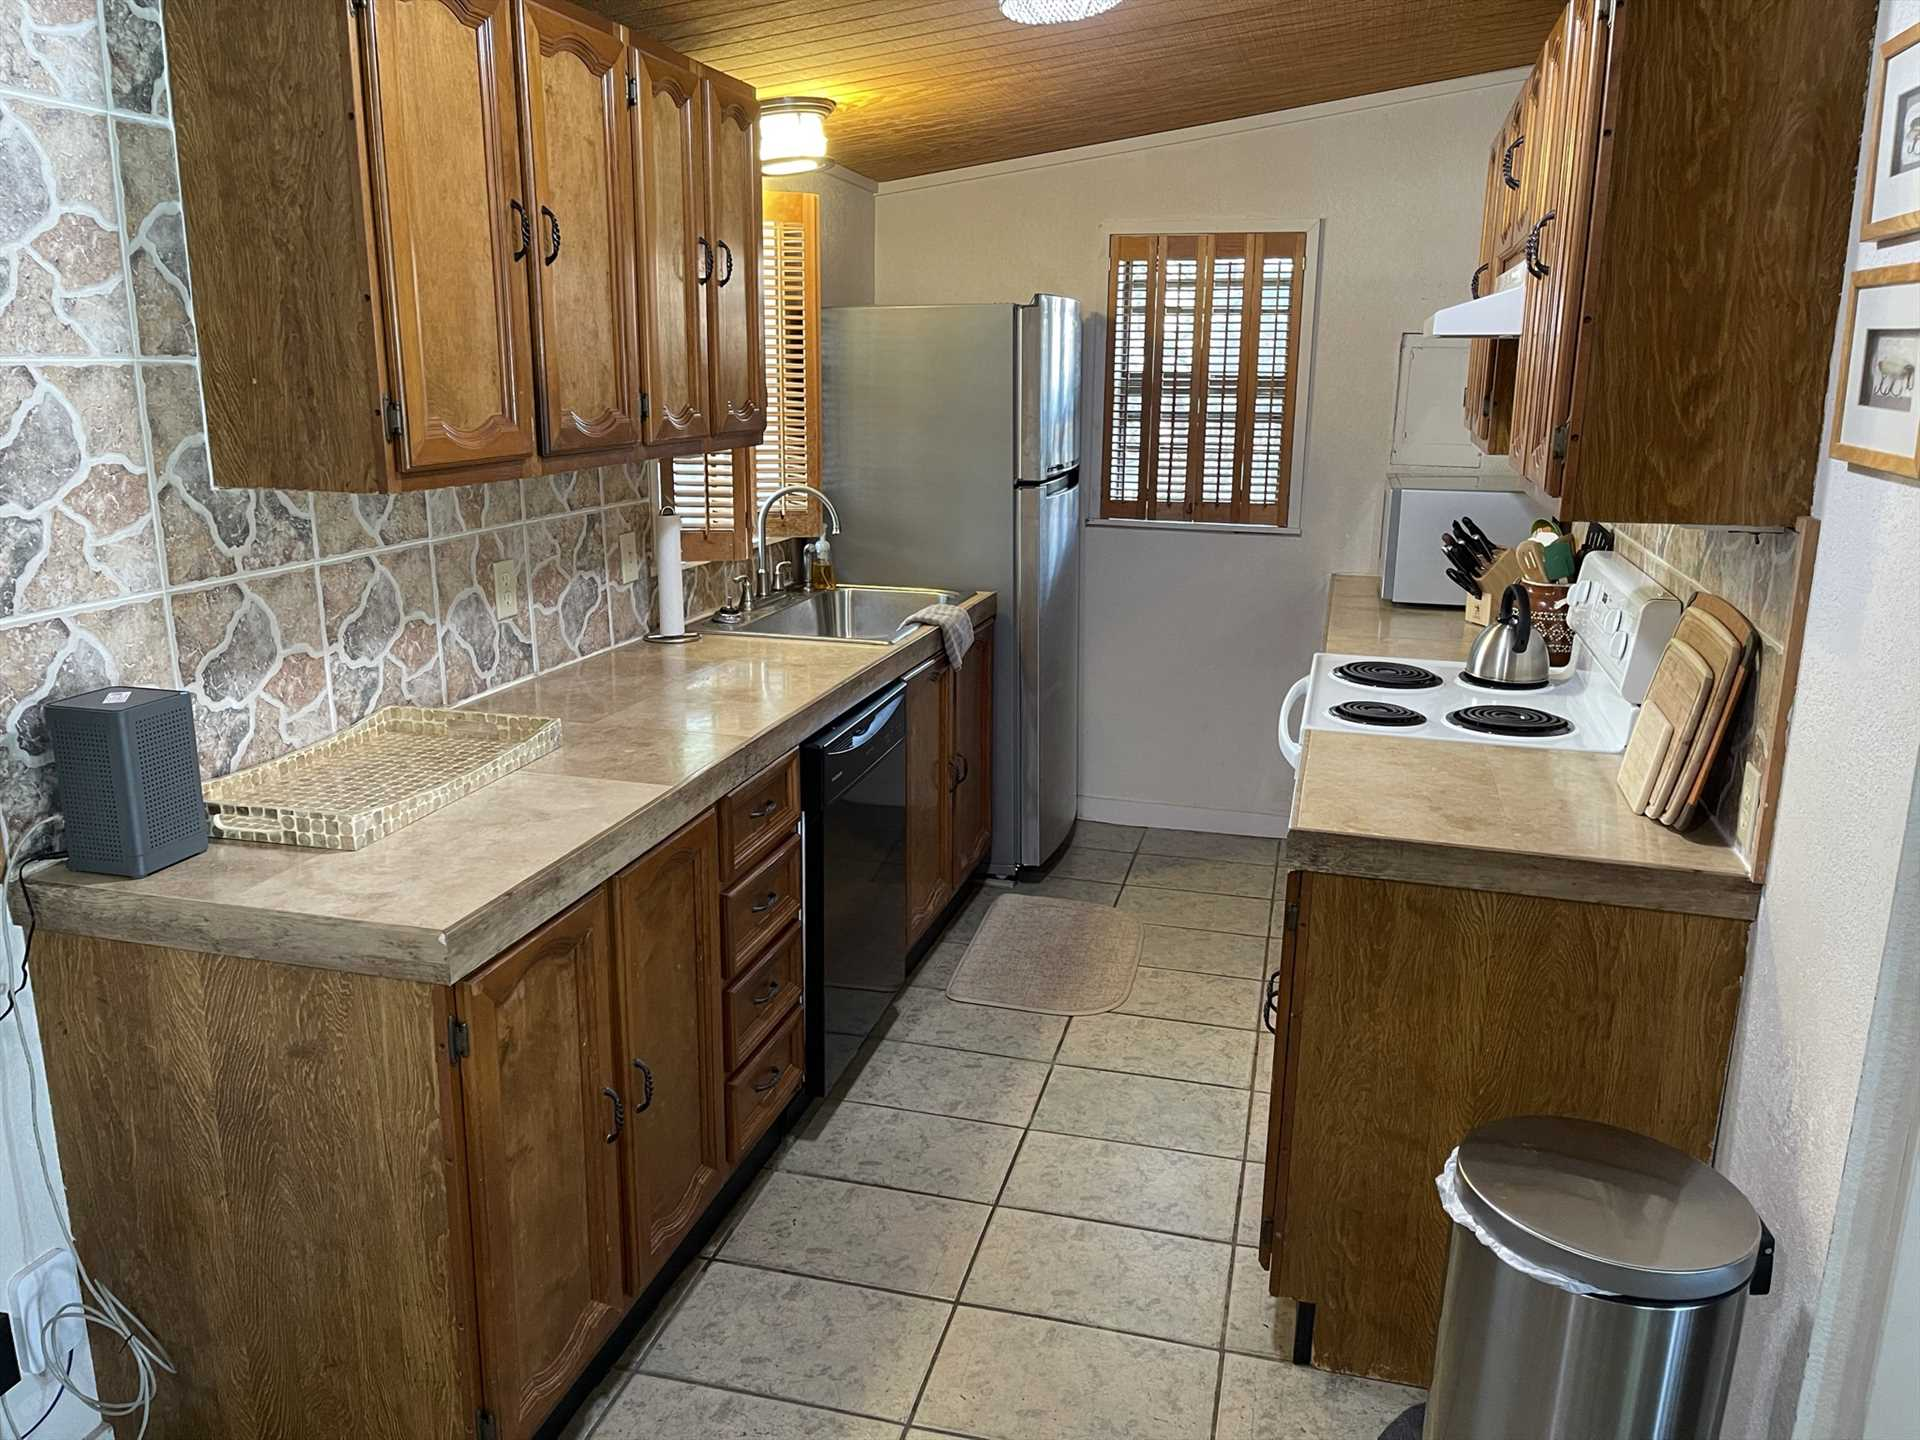 Pots, pans, cutlery, serving ware, glasses, and a full complement of appliances make the kitchen a cook's delight.